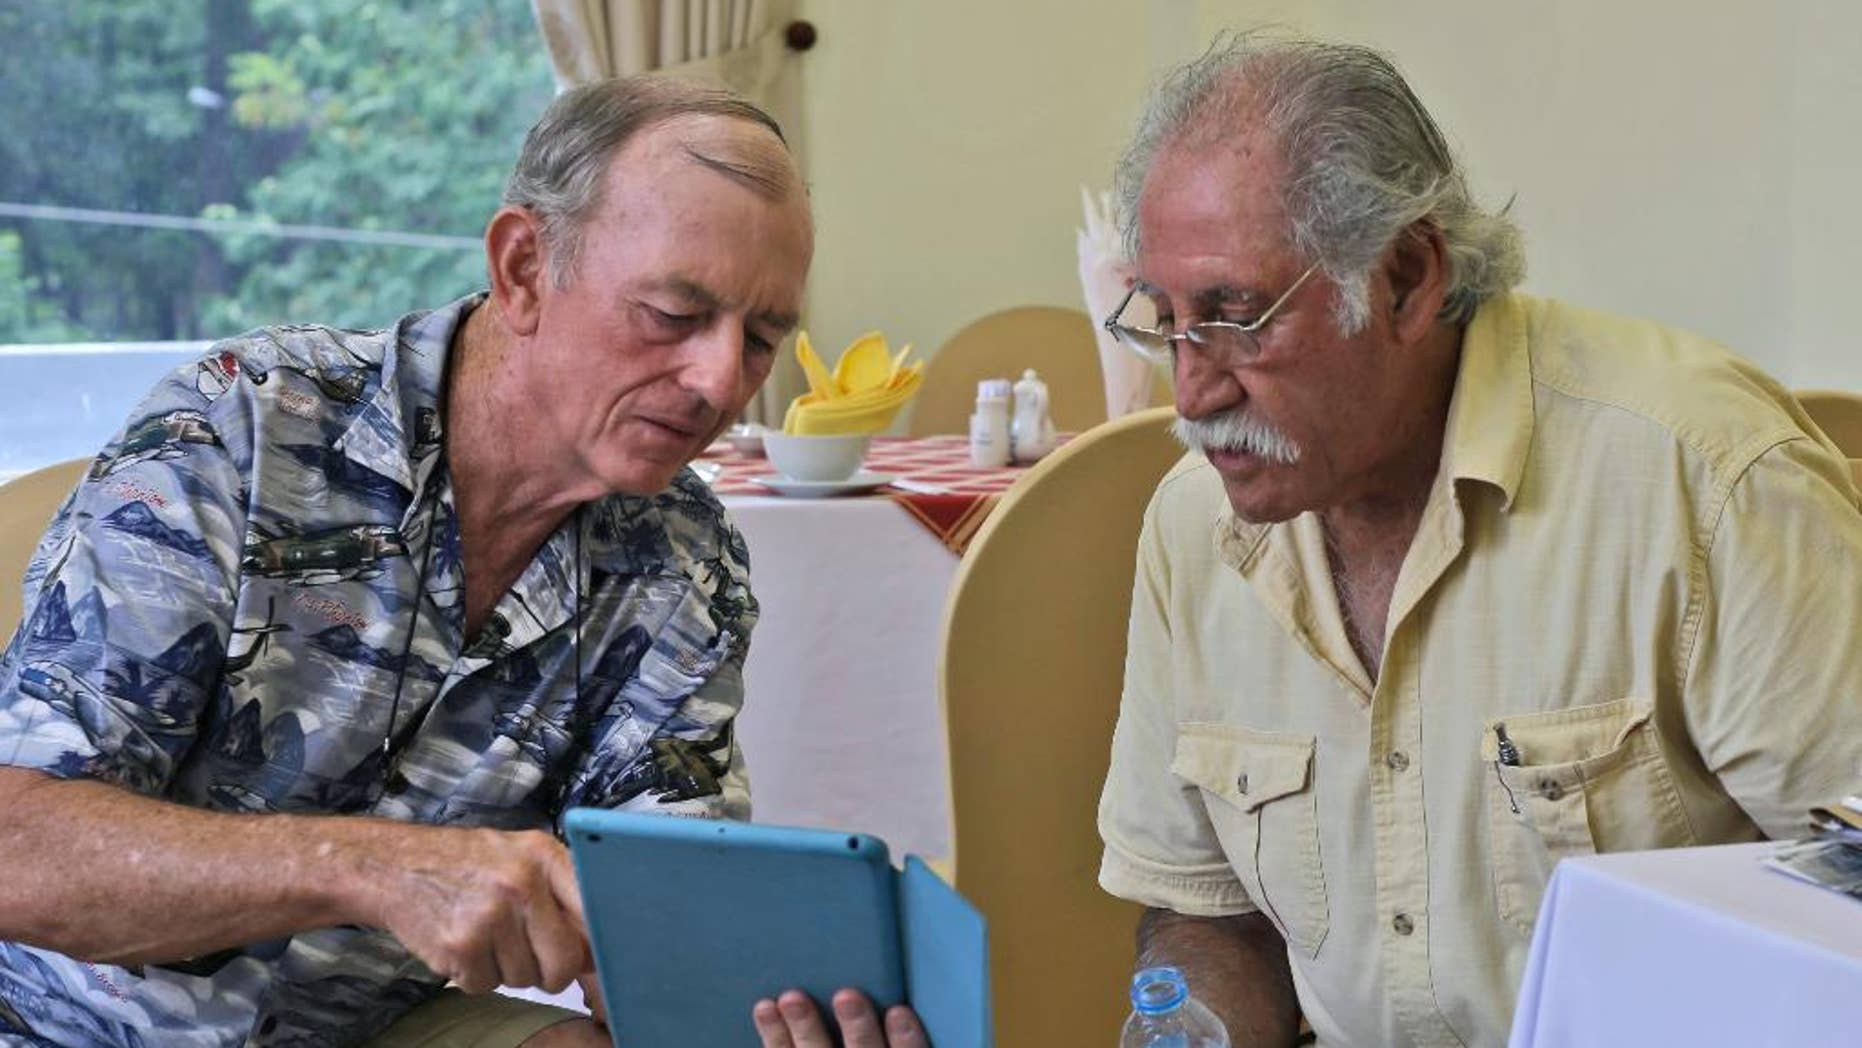 In this Tuesday, April 28, 2015 photo, former U.S. Marines Sgt. Kevin Maloney, left, of Hollywood, Florida, and Master Gunnery Sgt. Juan Valdez, of Oceanside, Calif., browse some photos on Maloney's tablet in Ho Chi Minh City, Vietnam. On the 40th anniversary of the fall of Saigon, 13 Marines who were there that day returned to dedicate a plague to their two fallen comrades at the site of the old embassy, which is now the U.S. Consulate. (AP Photo/Dita Alangkara)